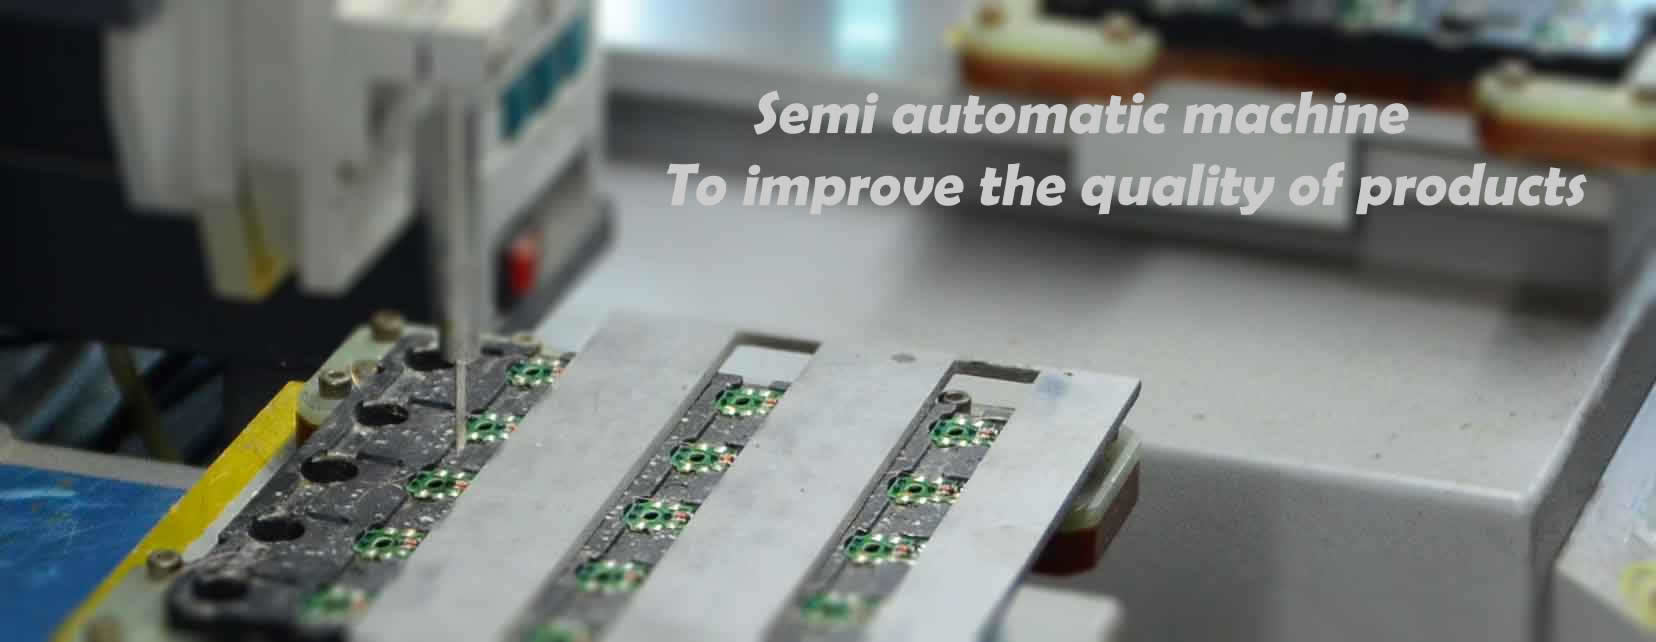 We use semi automatic machine to  improve the quality of products!!!